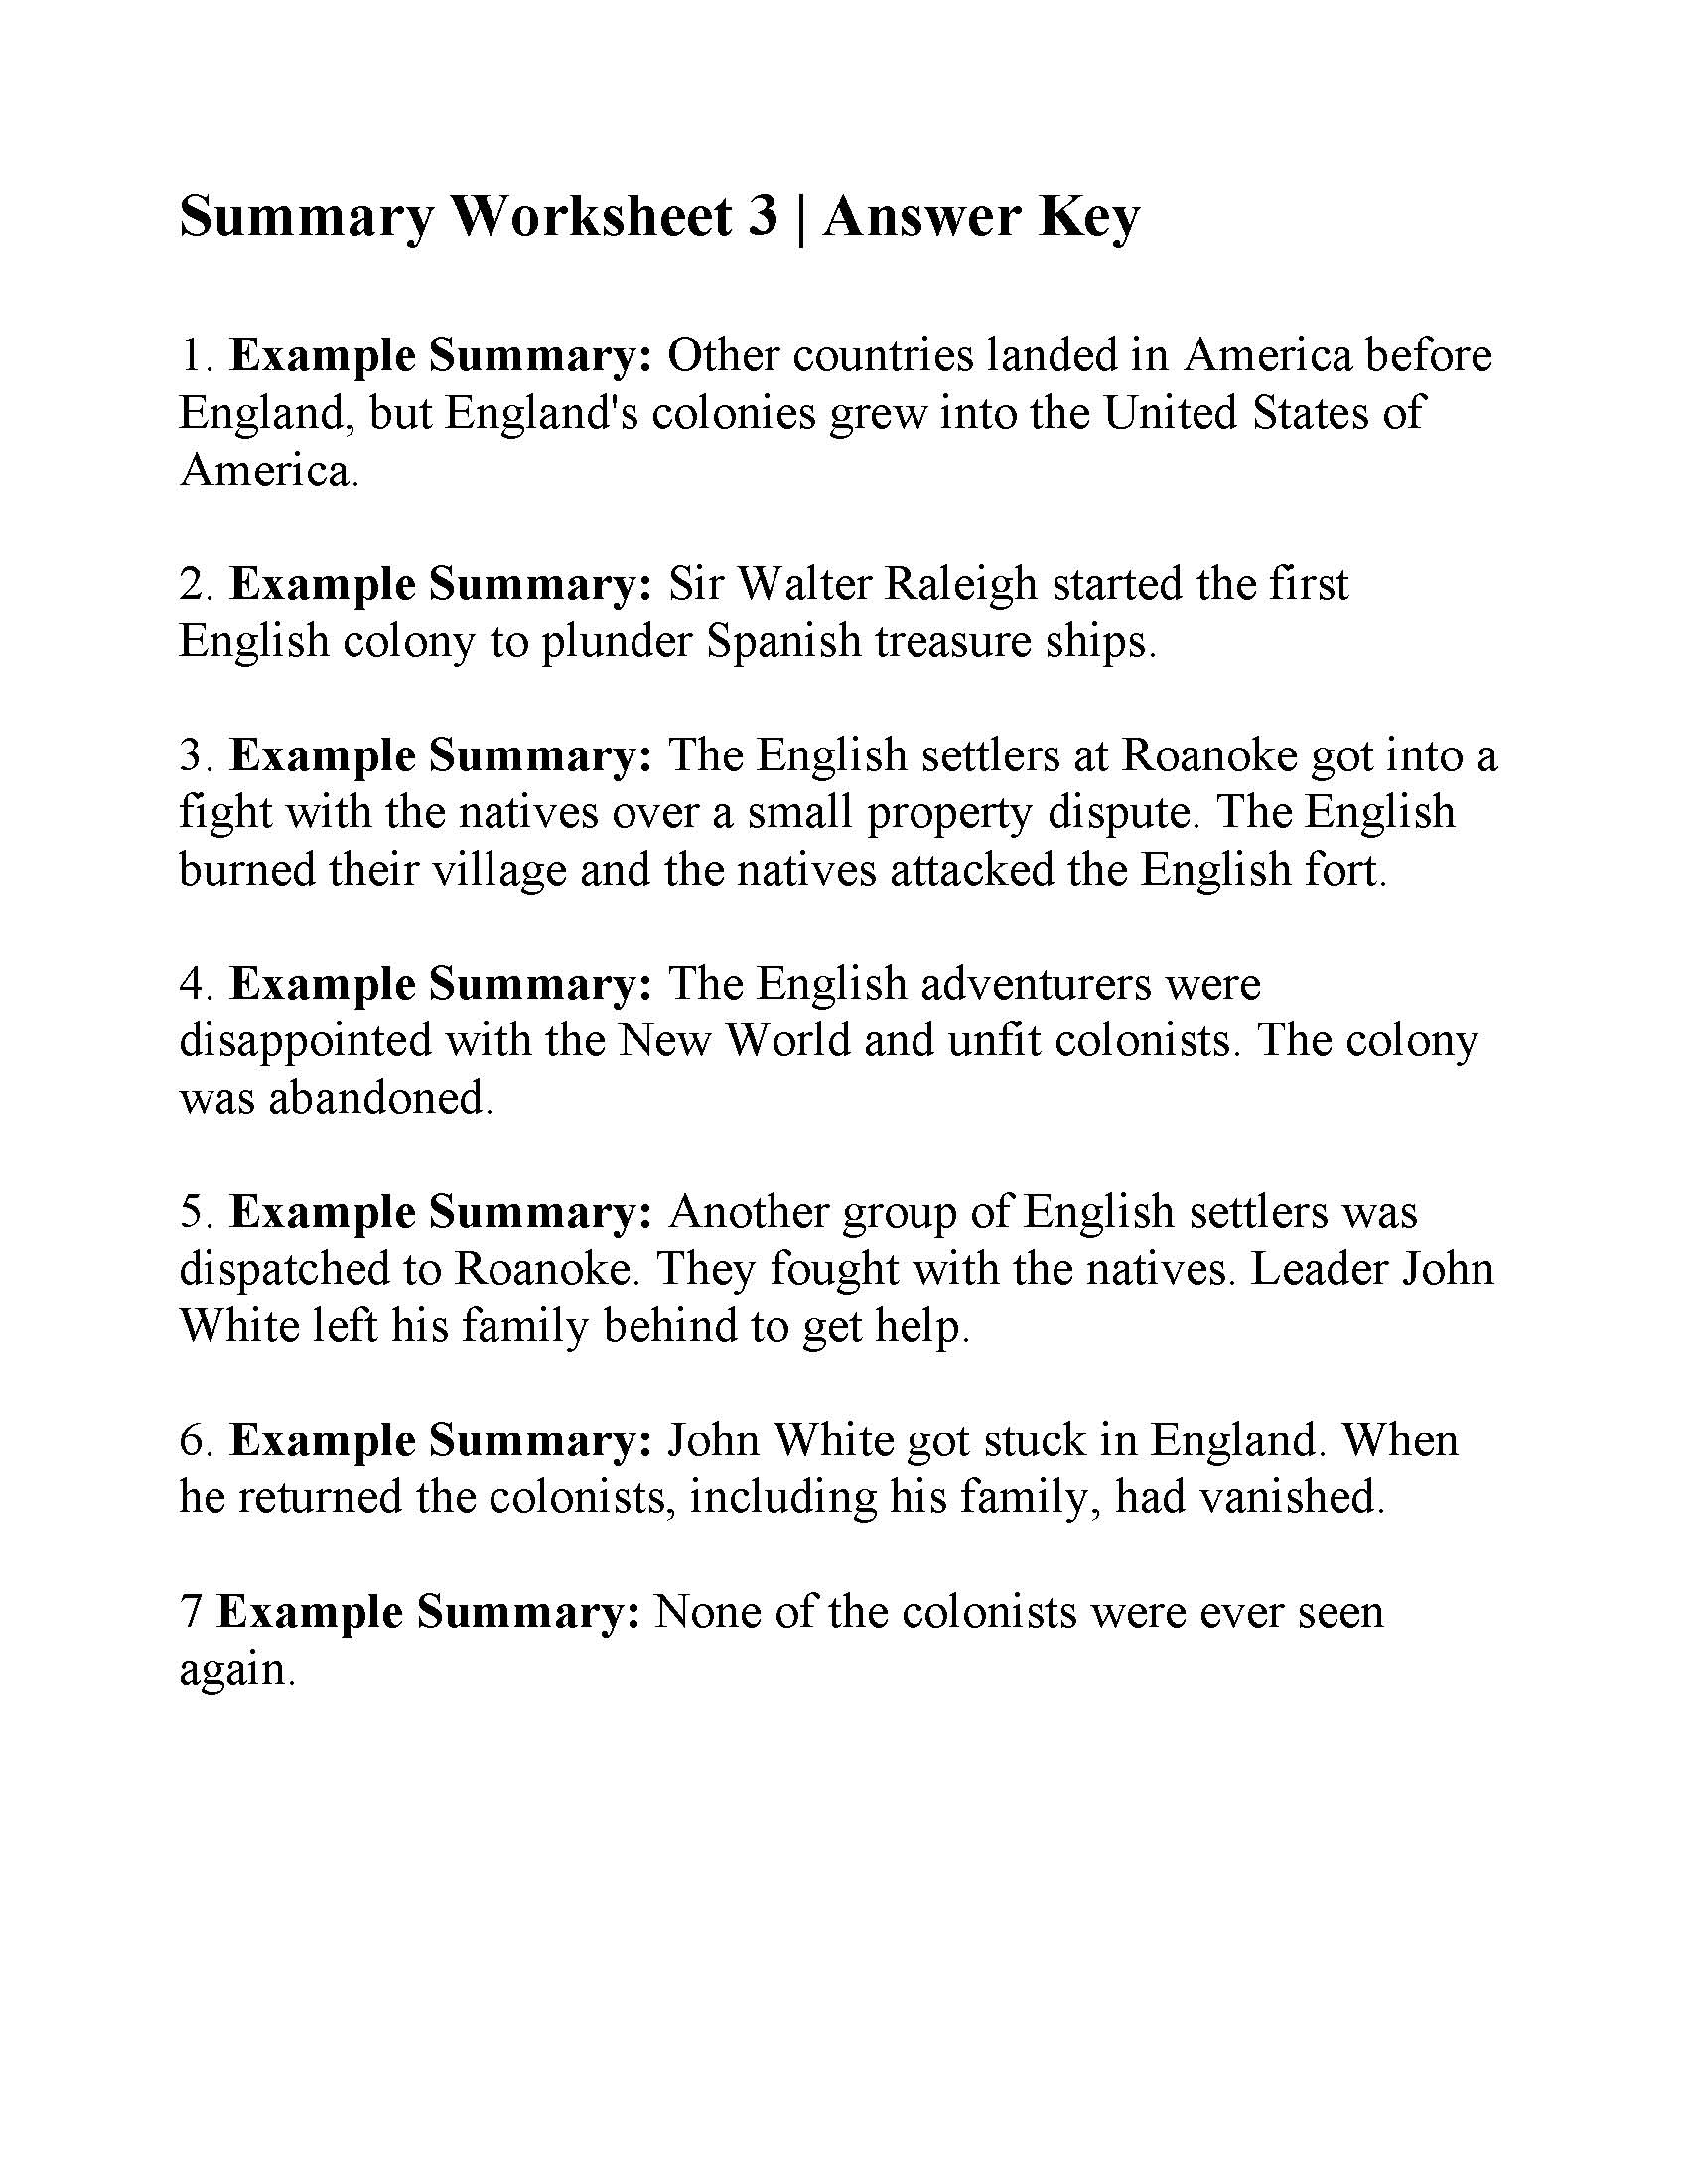 Worksheets Summarizing Worksheets summary worksheet 3 answers this is the answer key for 3